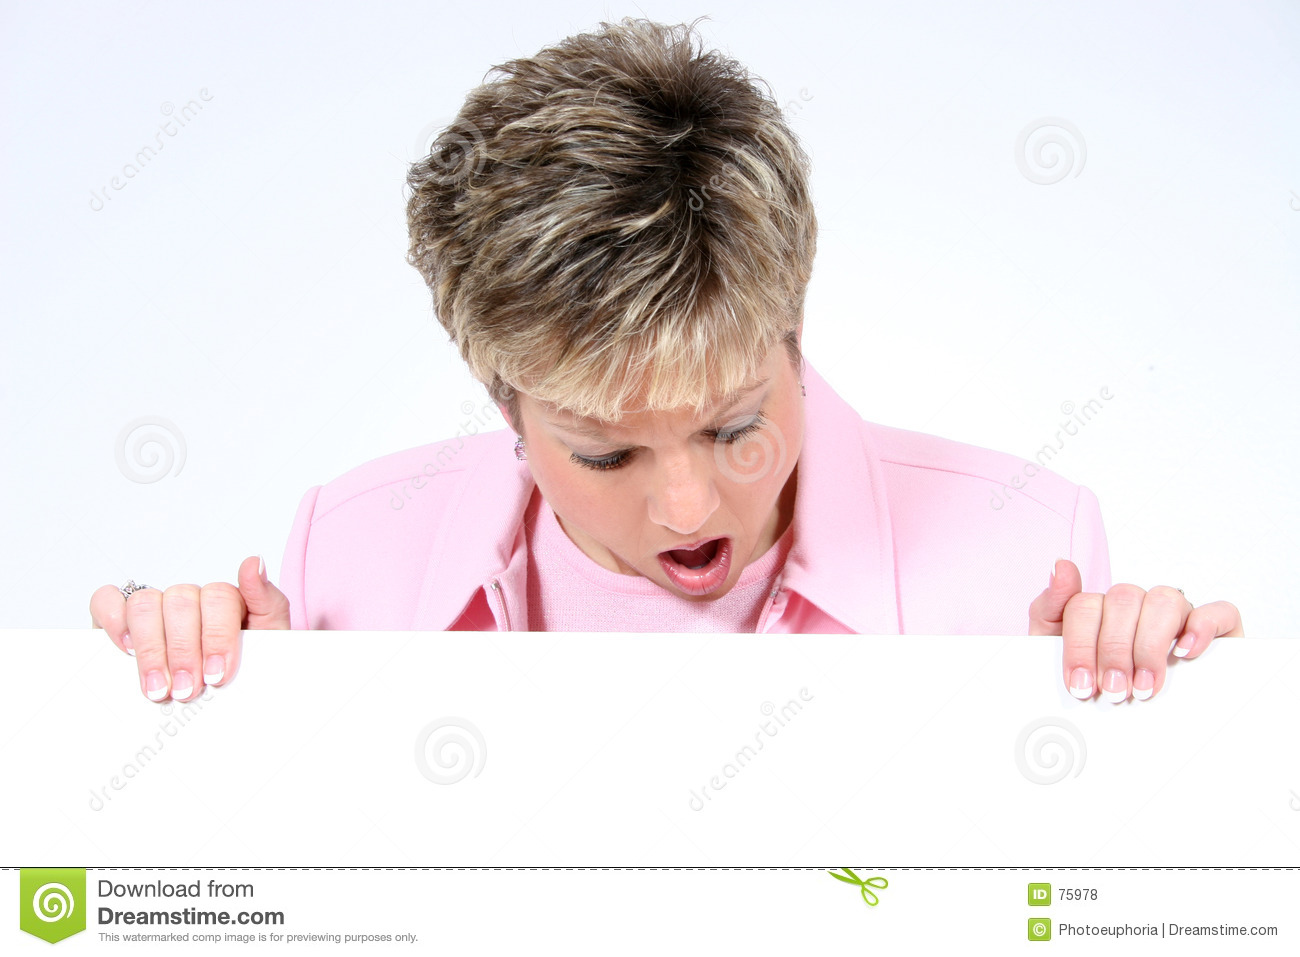 Add holding sign text white woman